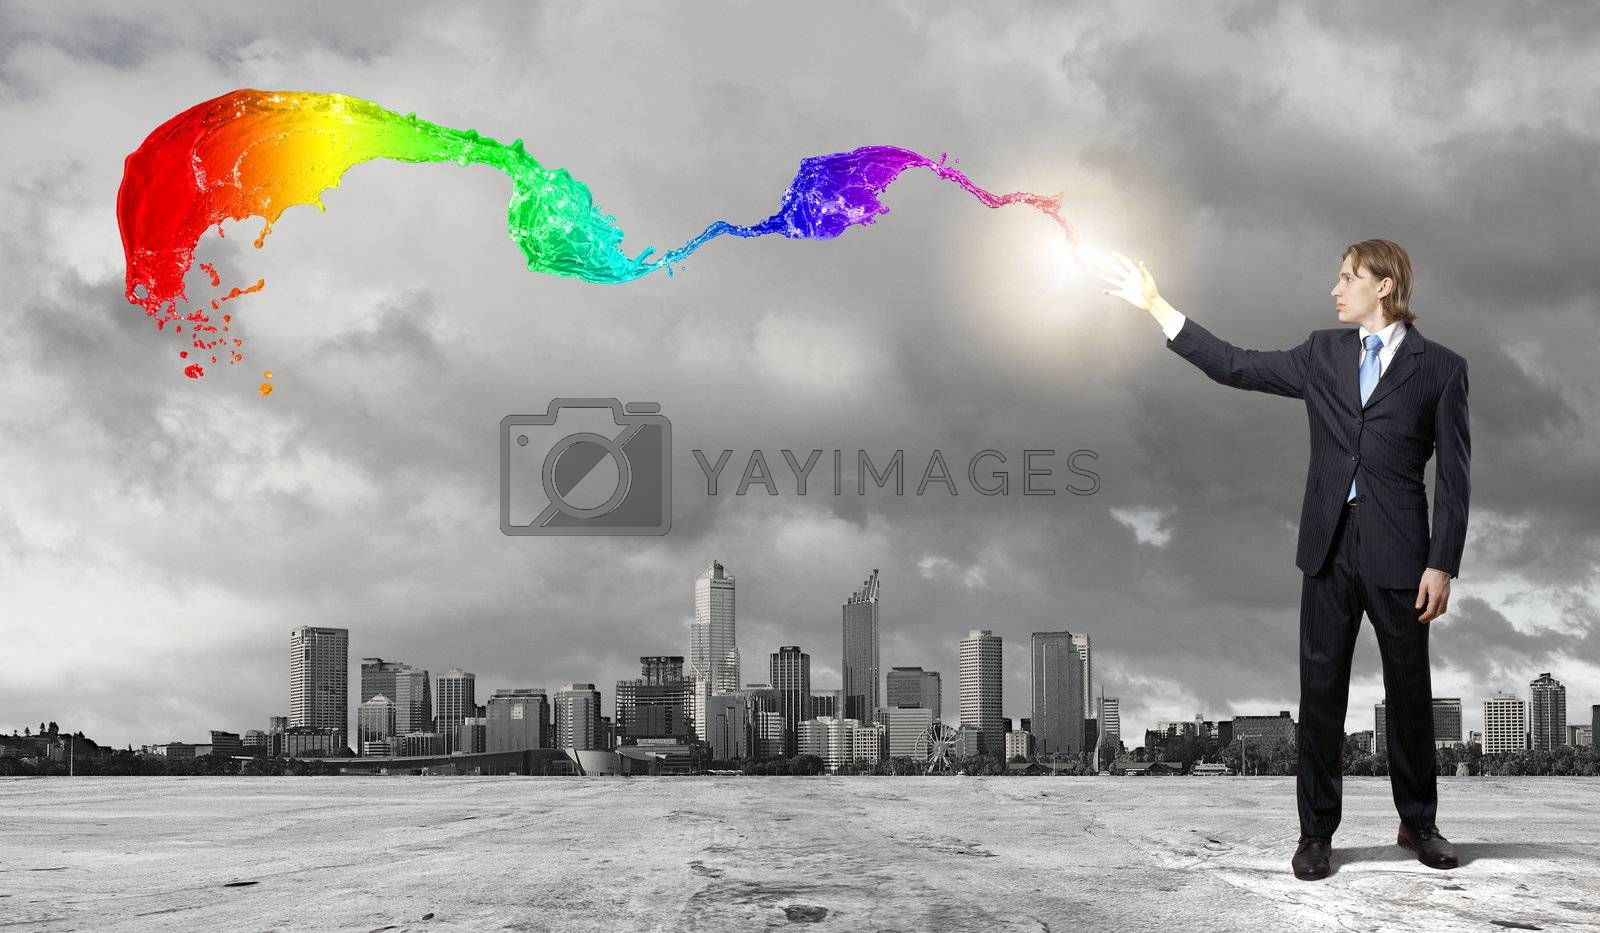 Image of a business man standing against cityscape